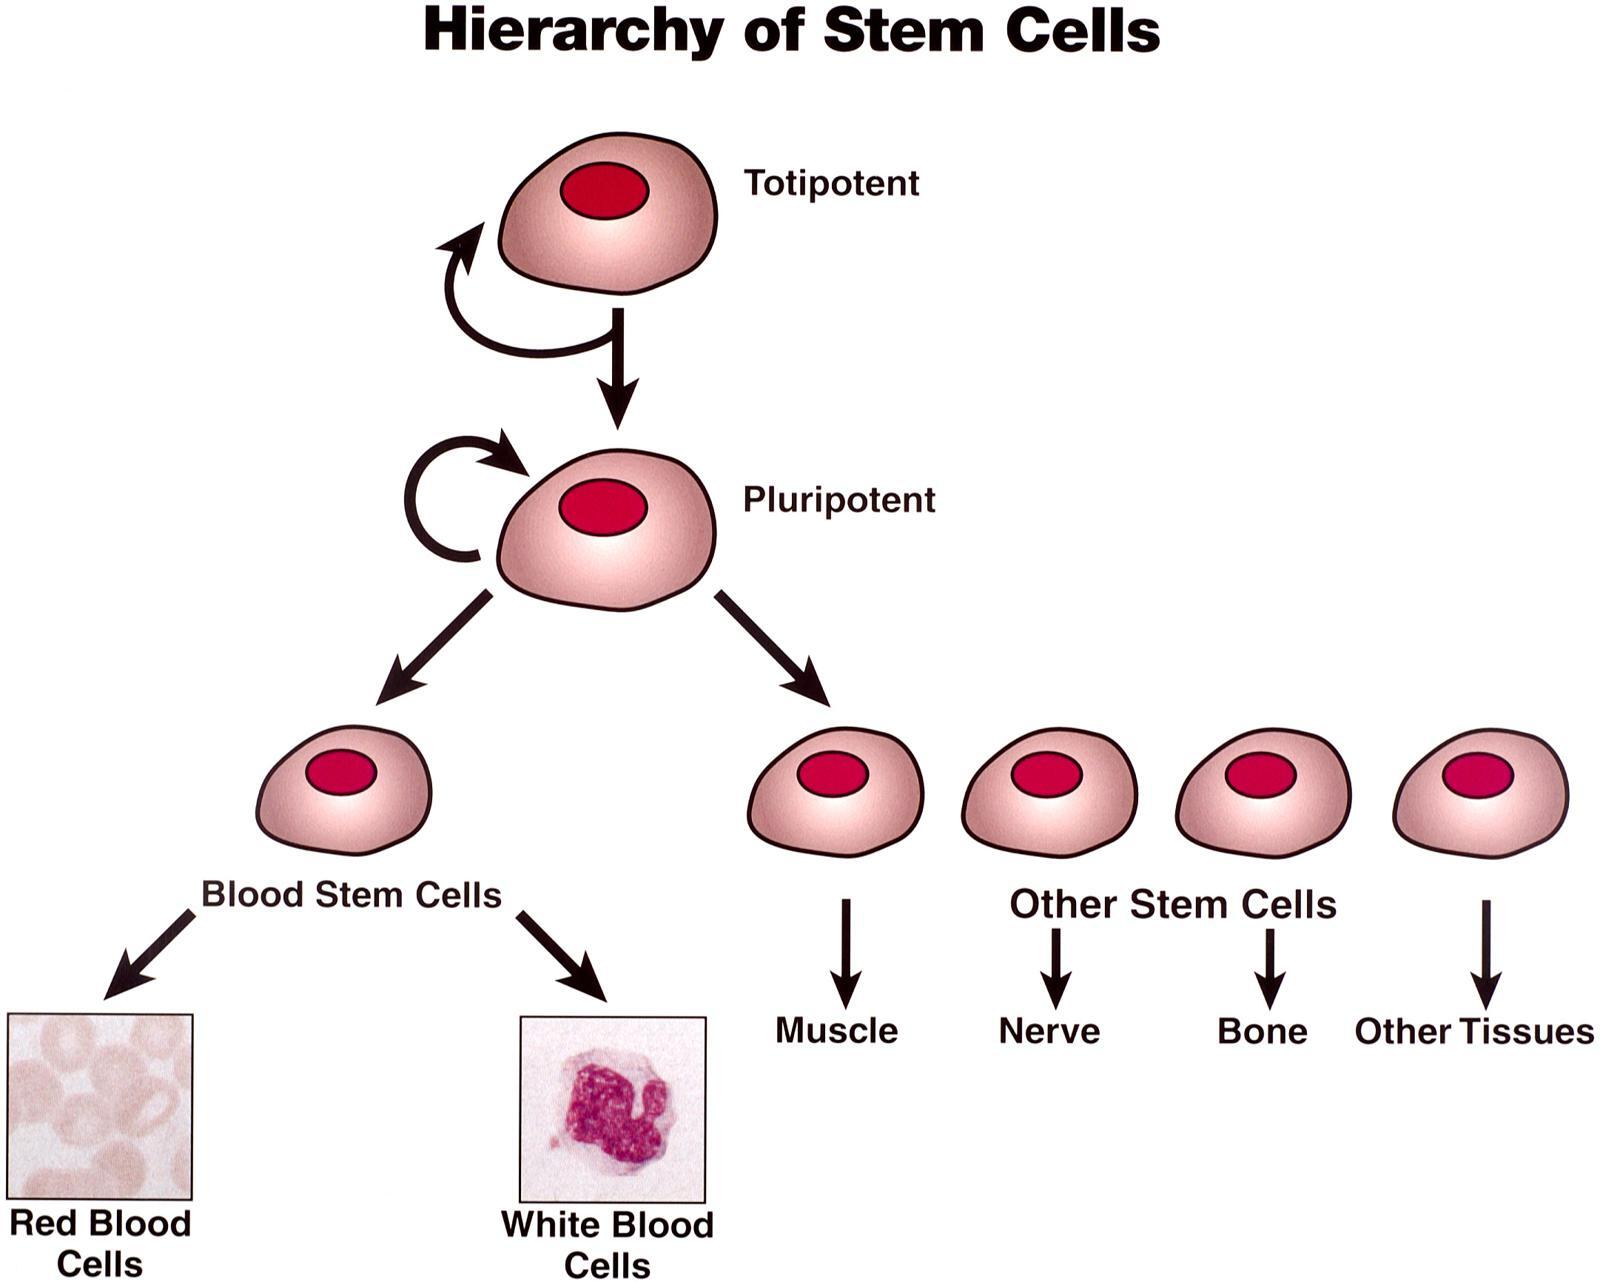 Audioboom / Topic 3-11 Stem Cells